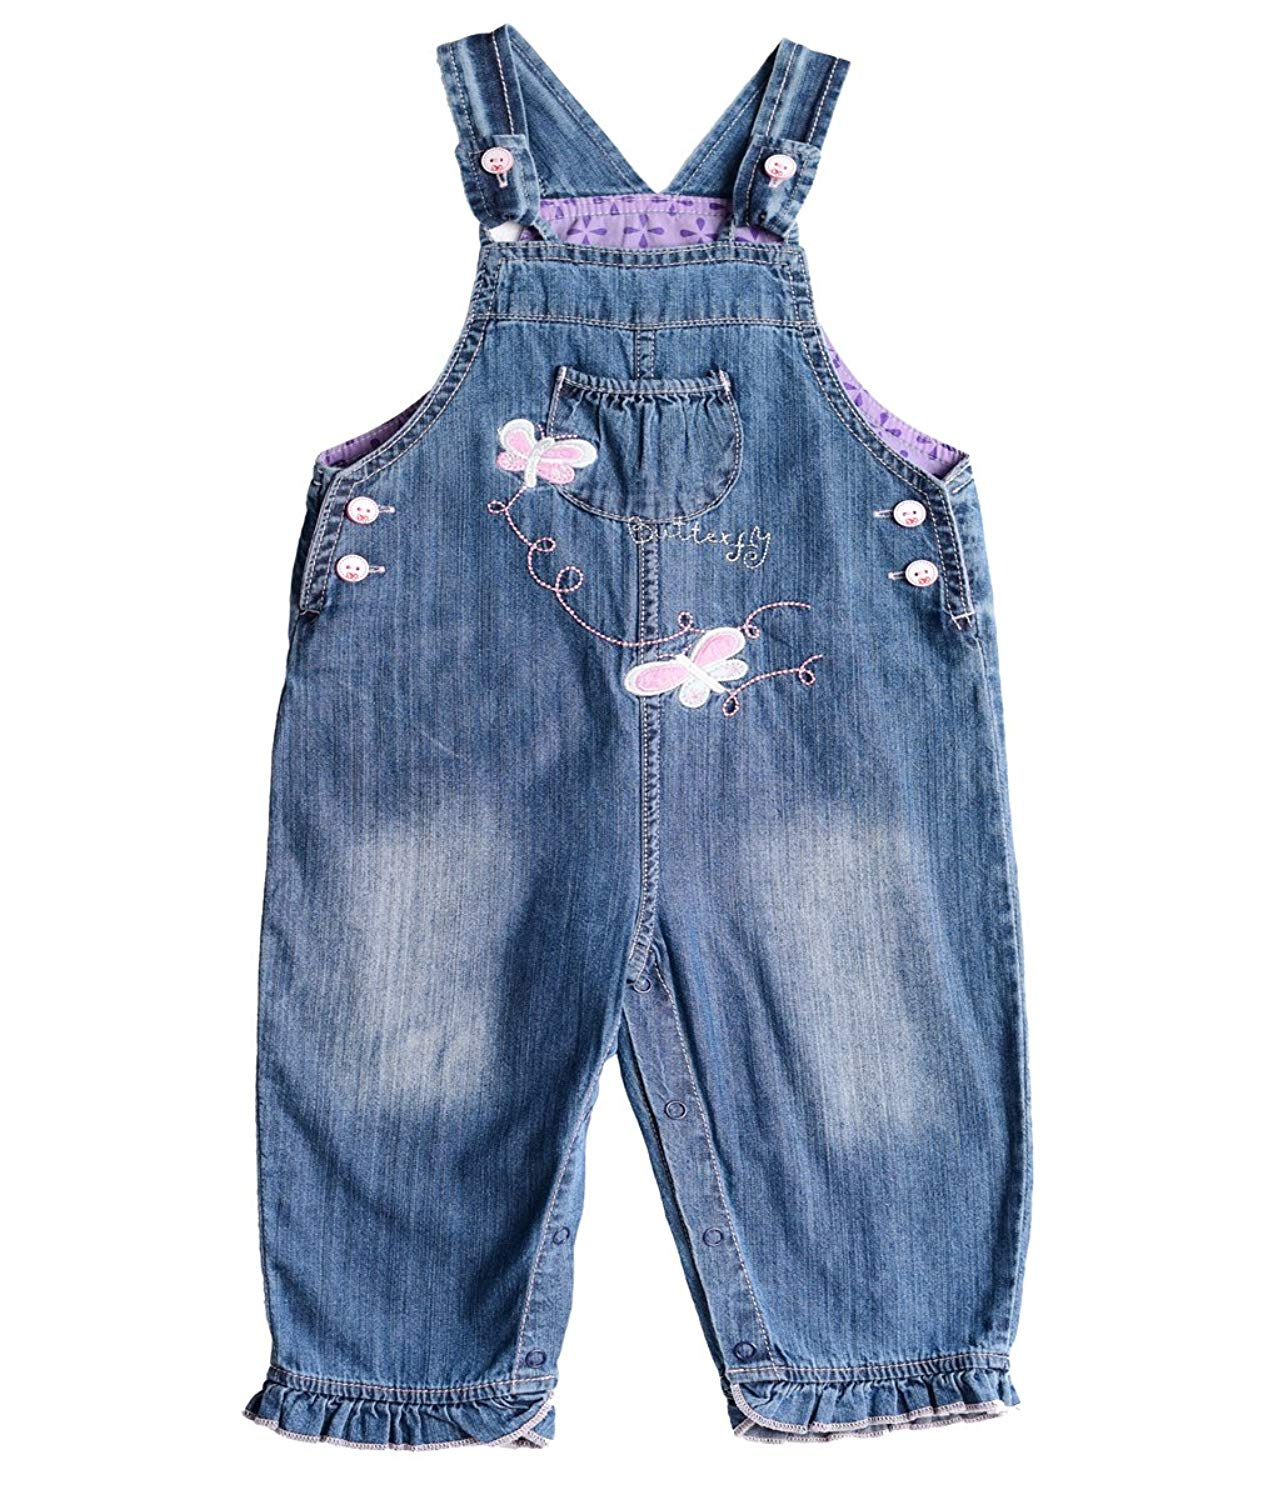 b6a3a28723b5 Get Quotations · ZL MAGIC Baby   Little Girls Embroidery Soft Bib Denim  Overalls Washed Jumpsuits Jeans